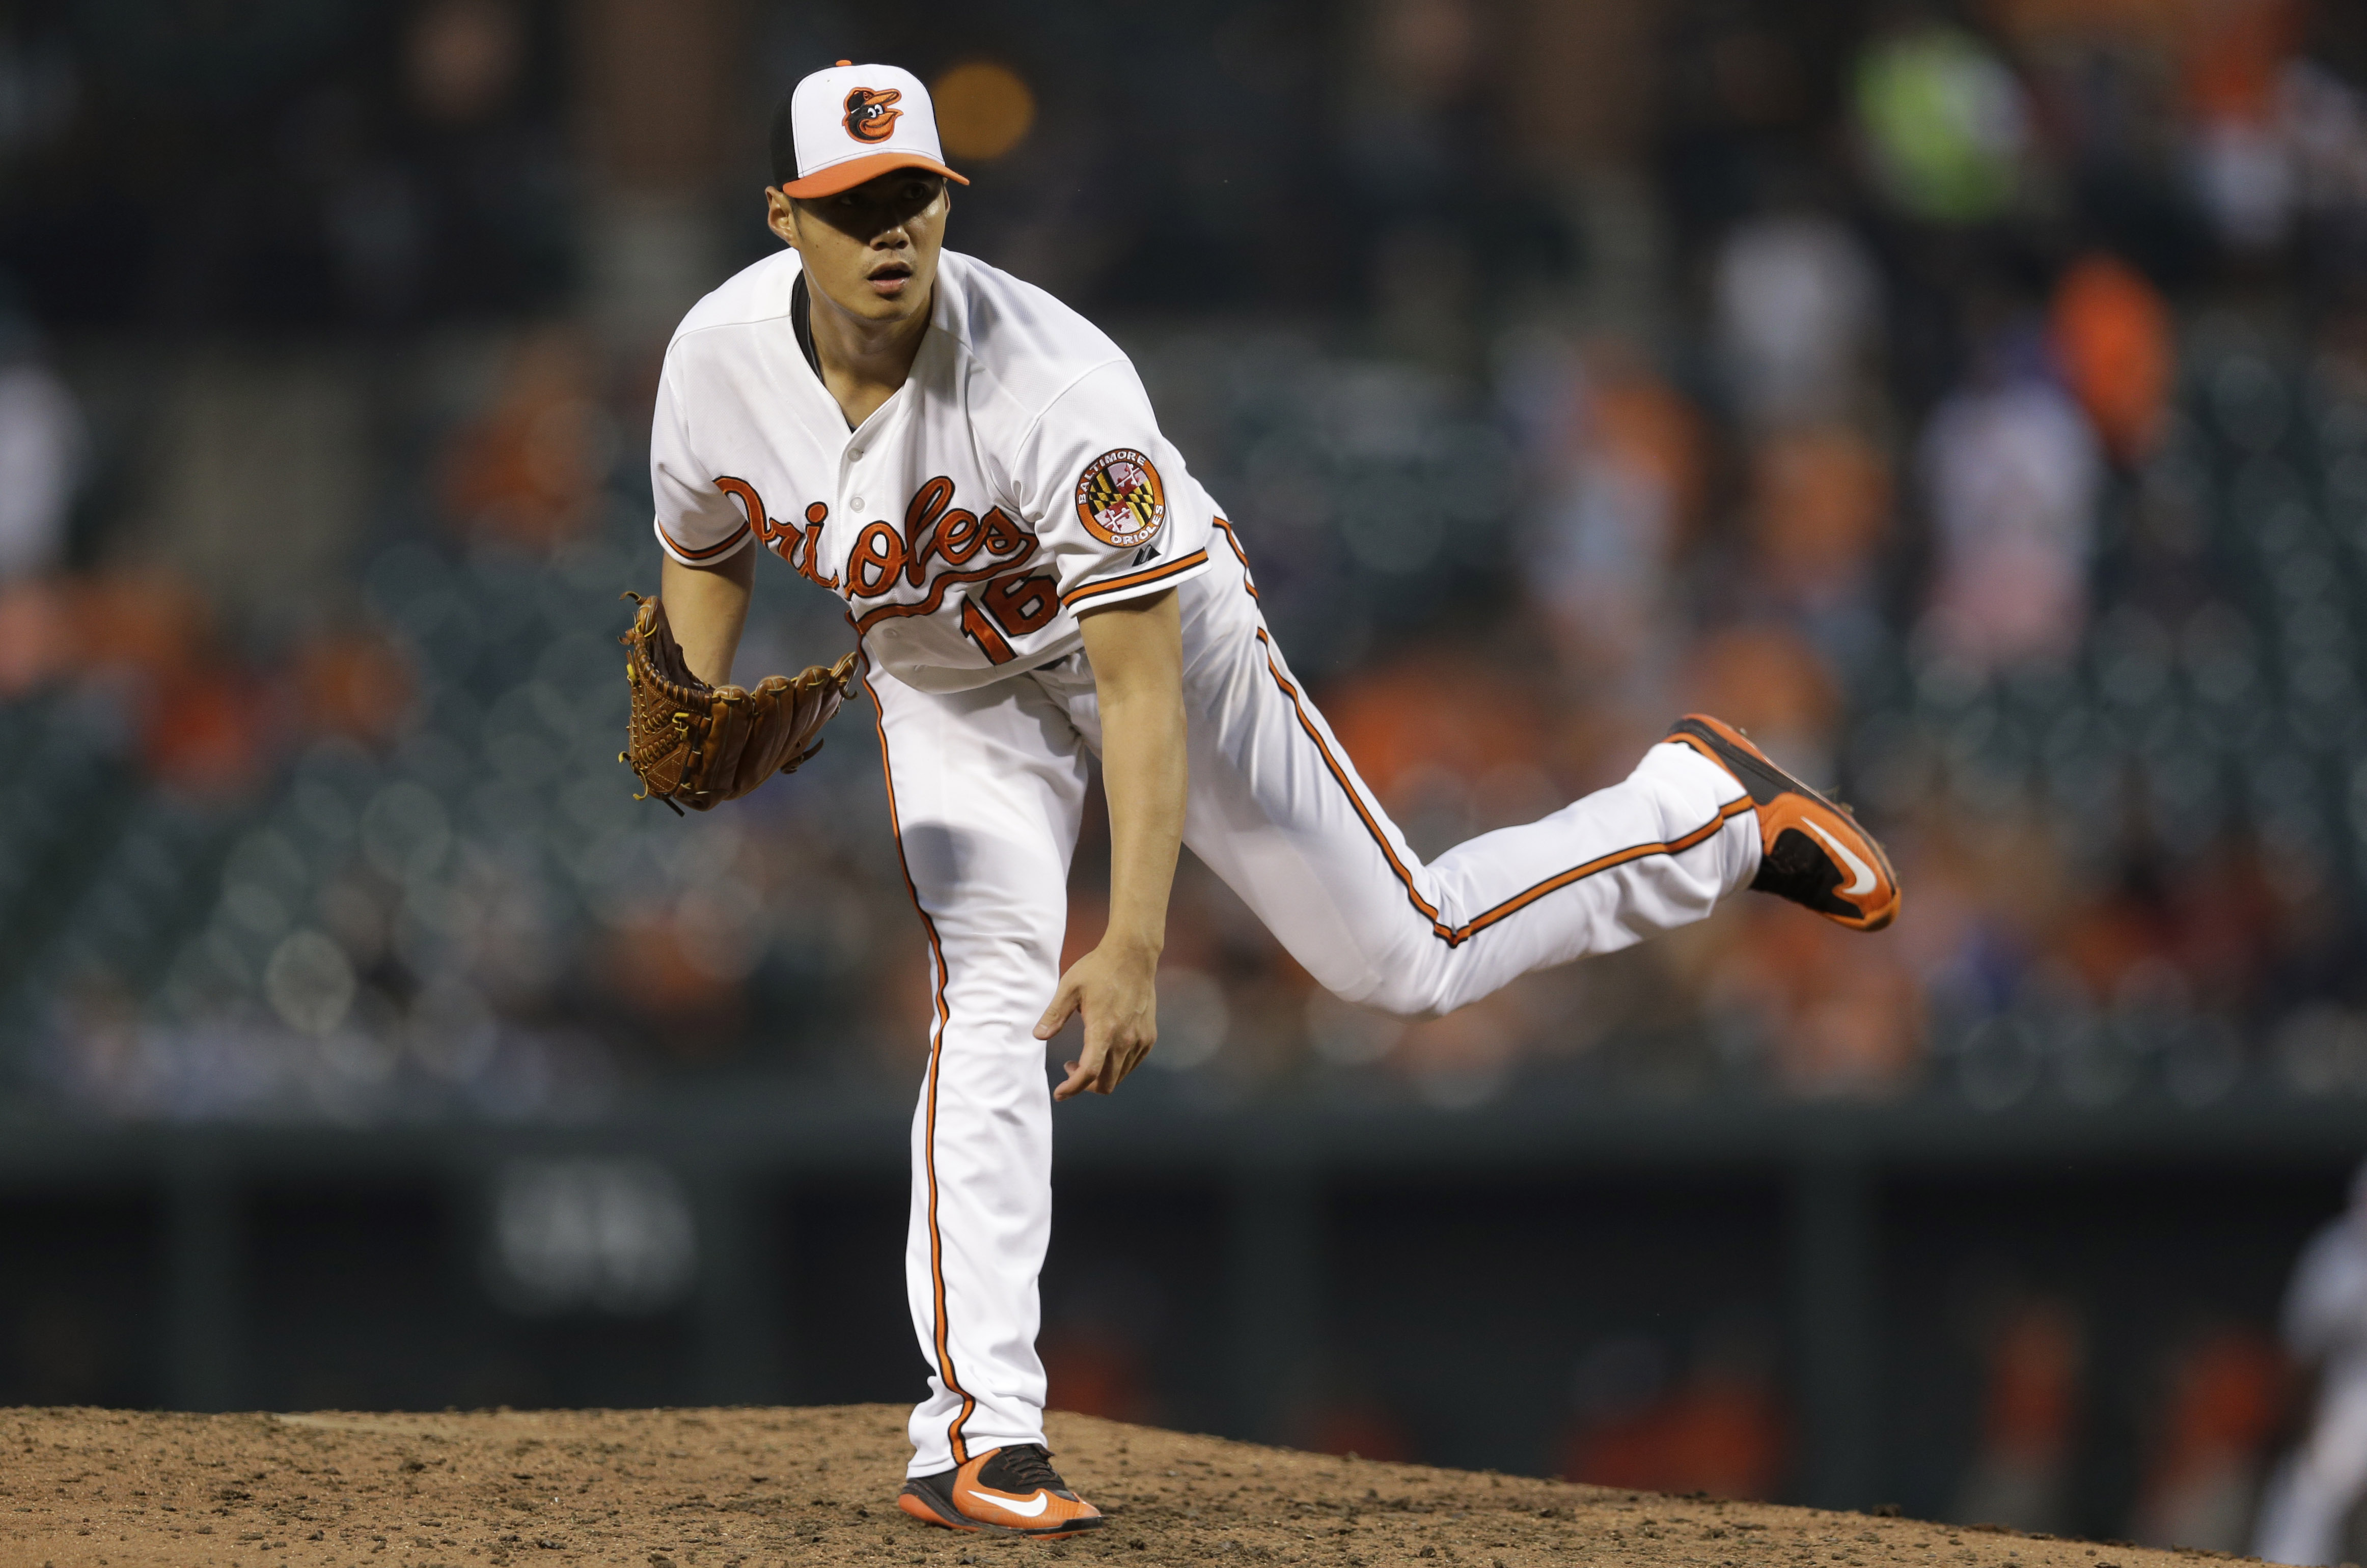 Baltimore Orioles starting pitcher Wei-Yin Chen, of Taiwan, follows through on a pitch to the Boston Red Sox during the fifth inning of a baseball game, Wednesday, June 10, 2015, in Baltimore. (AP Photo/Patrick Semansky)